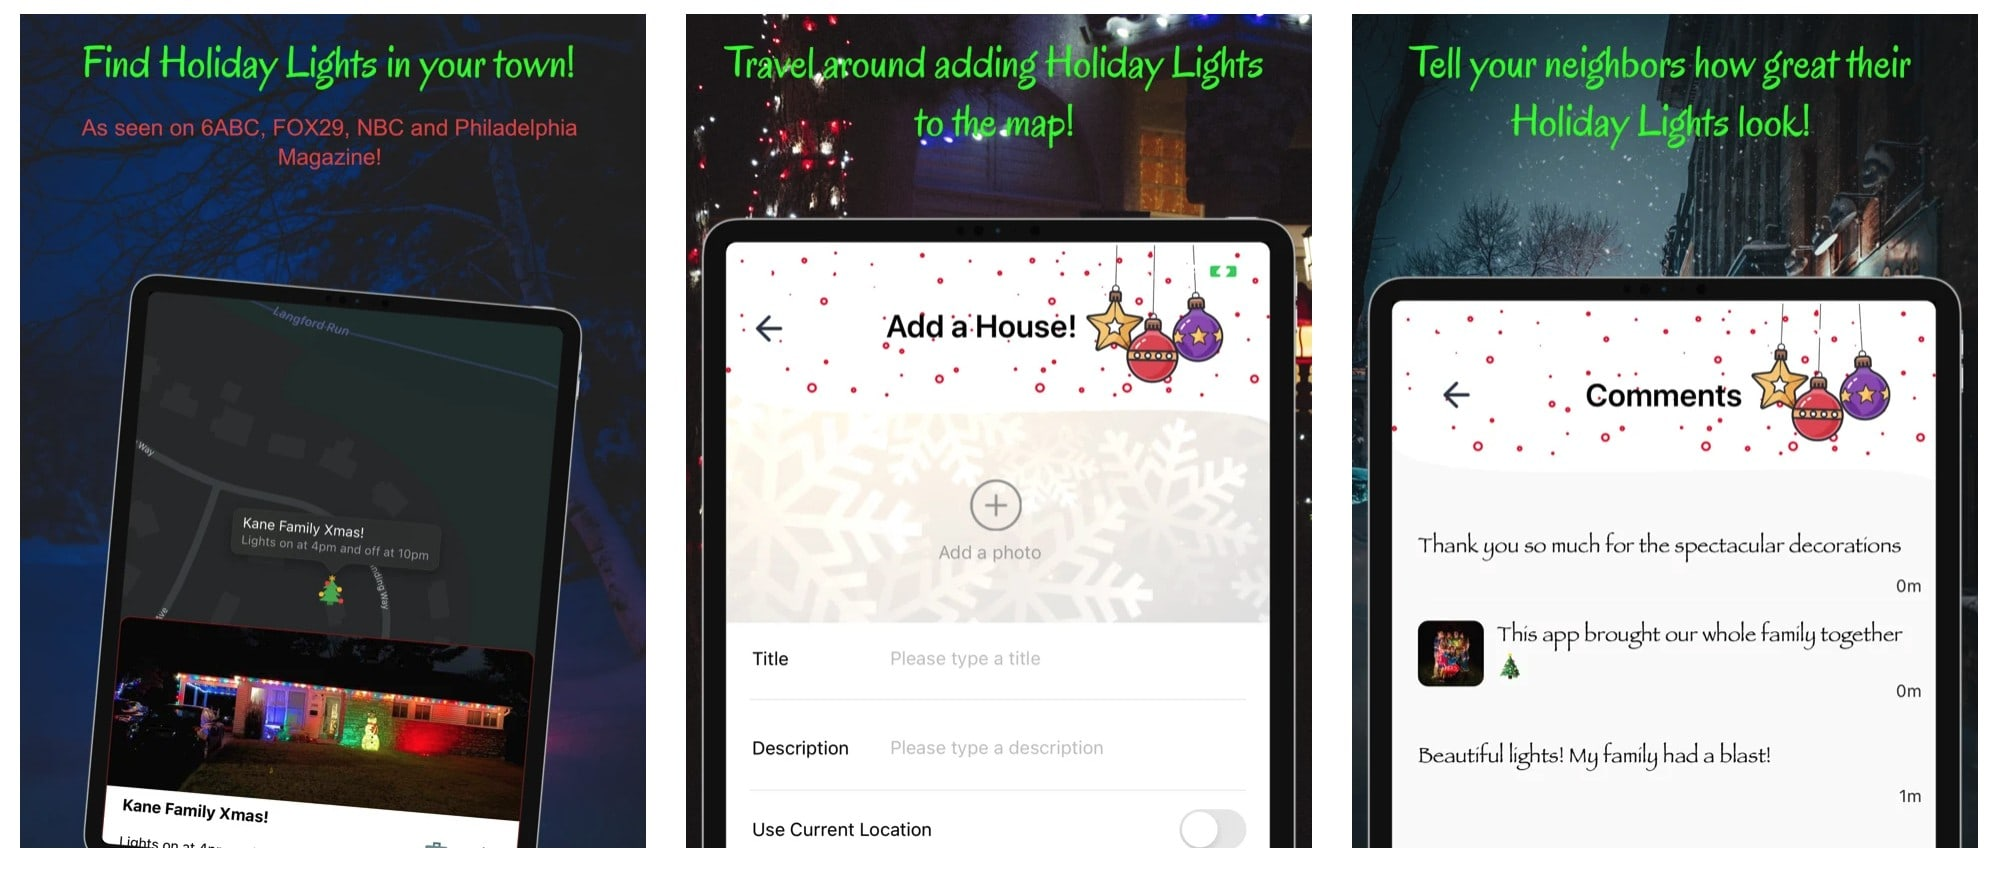 Christmasprism app for finding Christmas light shows and decorations